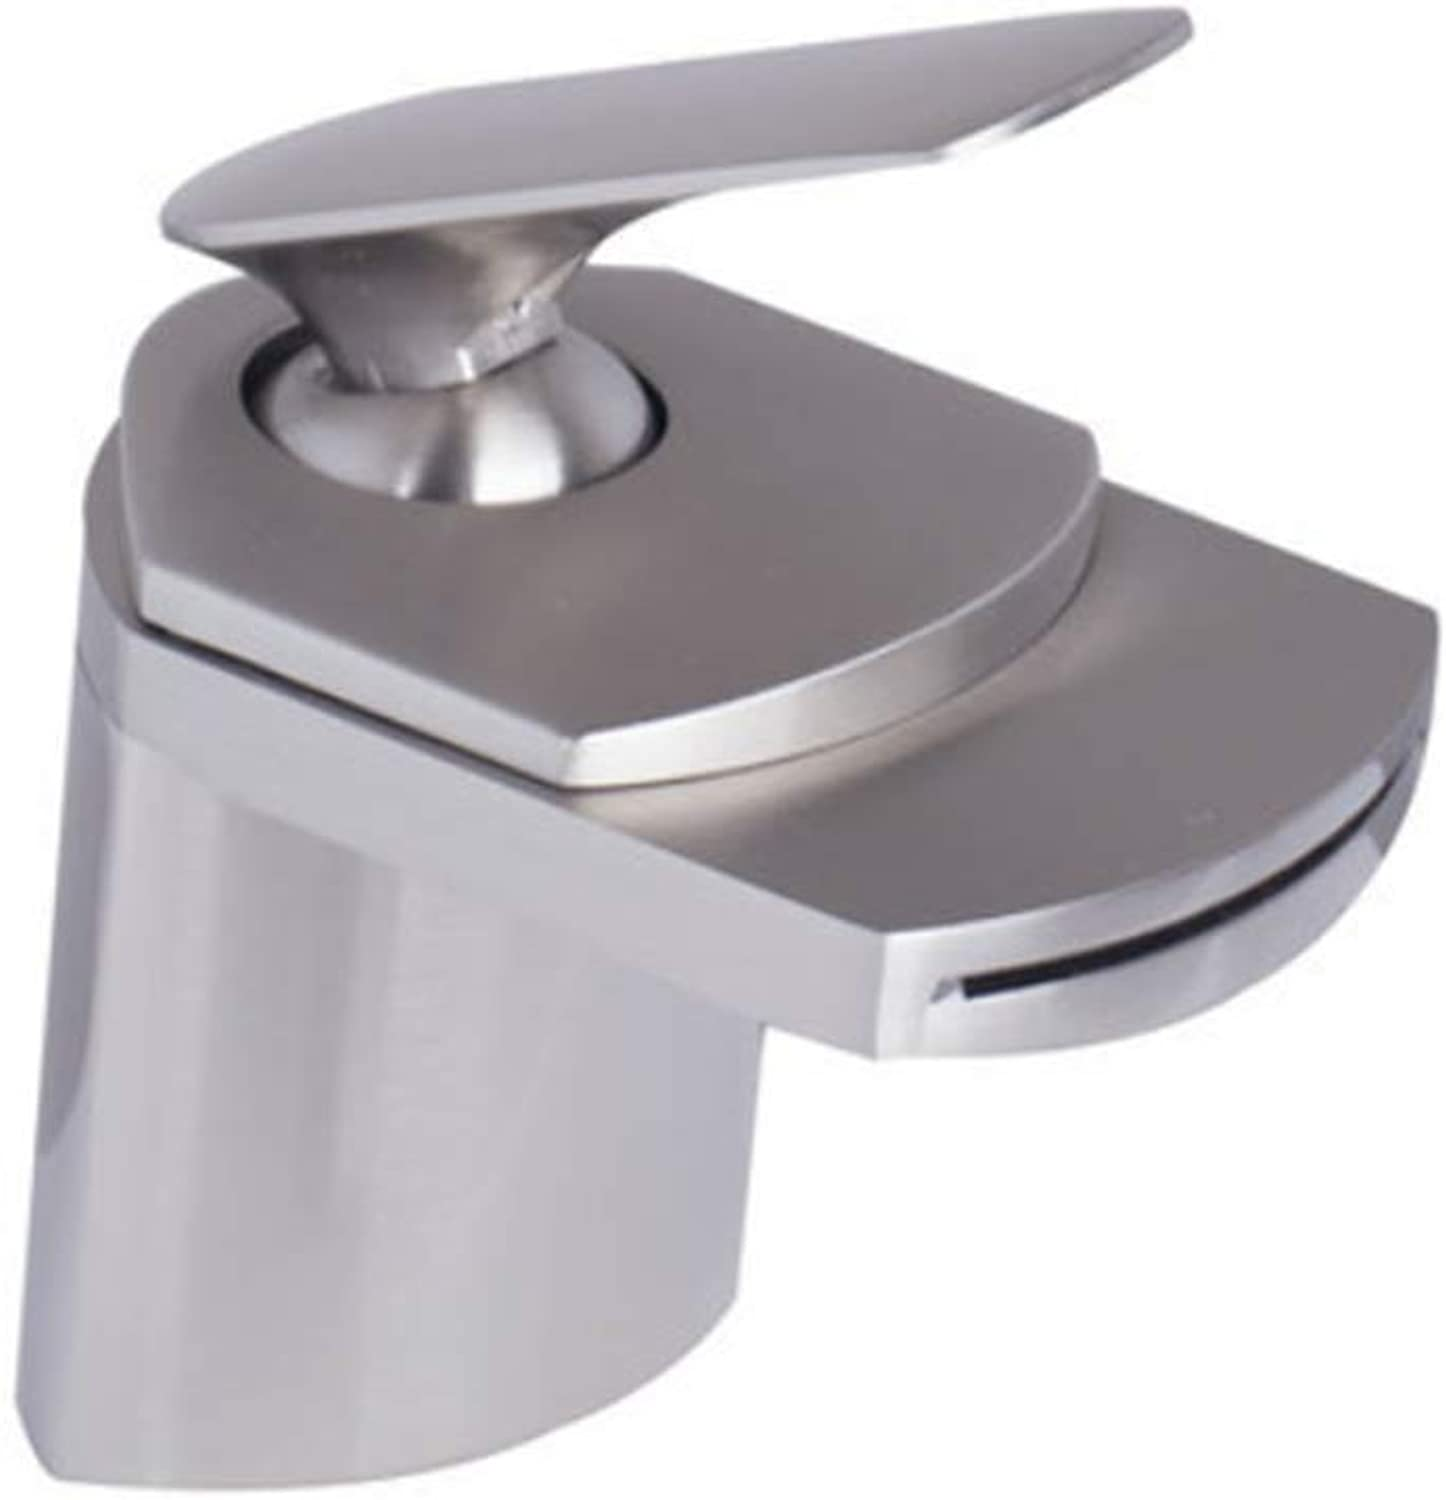 Taps Kitchen Basin Mixer Pull Out Mixerwaterfall Spout Wash Basin Tap Mixer Faucet Bathroom Chrome Wash Tap Deck Mounted